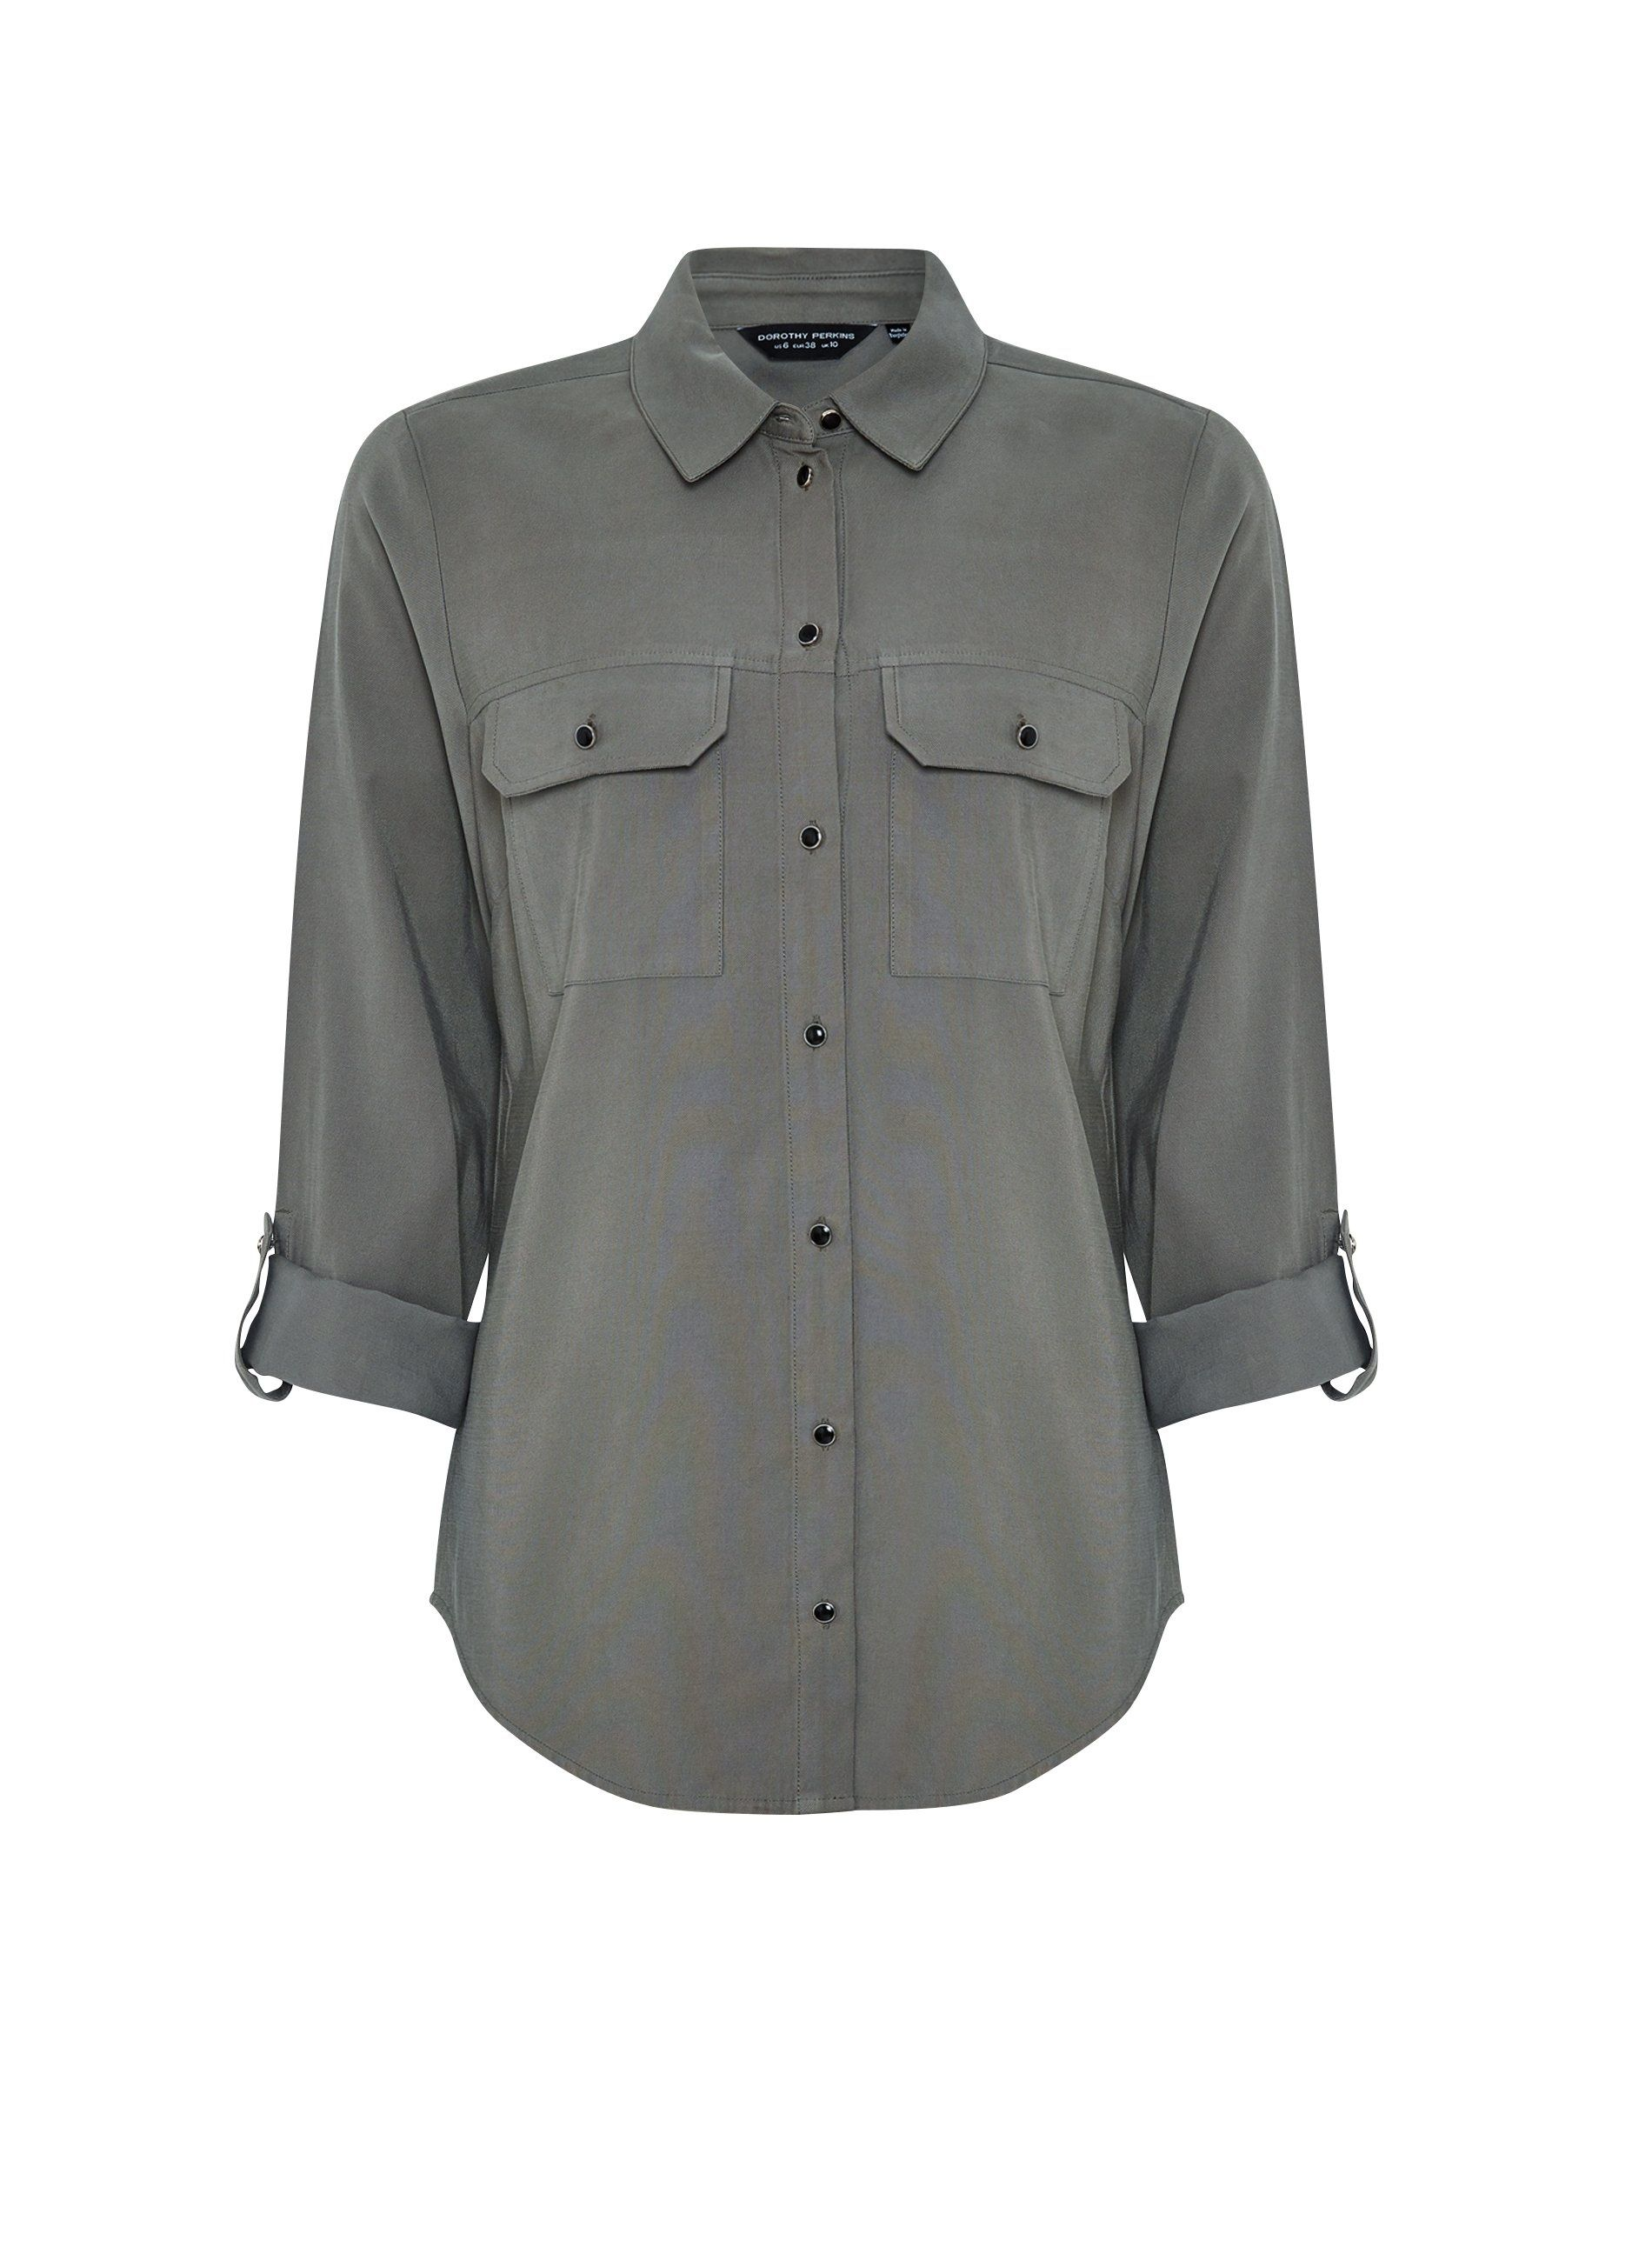 Dorothy Perkins Womens Green Utility Button Up Shirt Casual Blouse Top